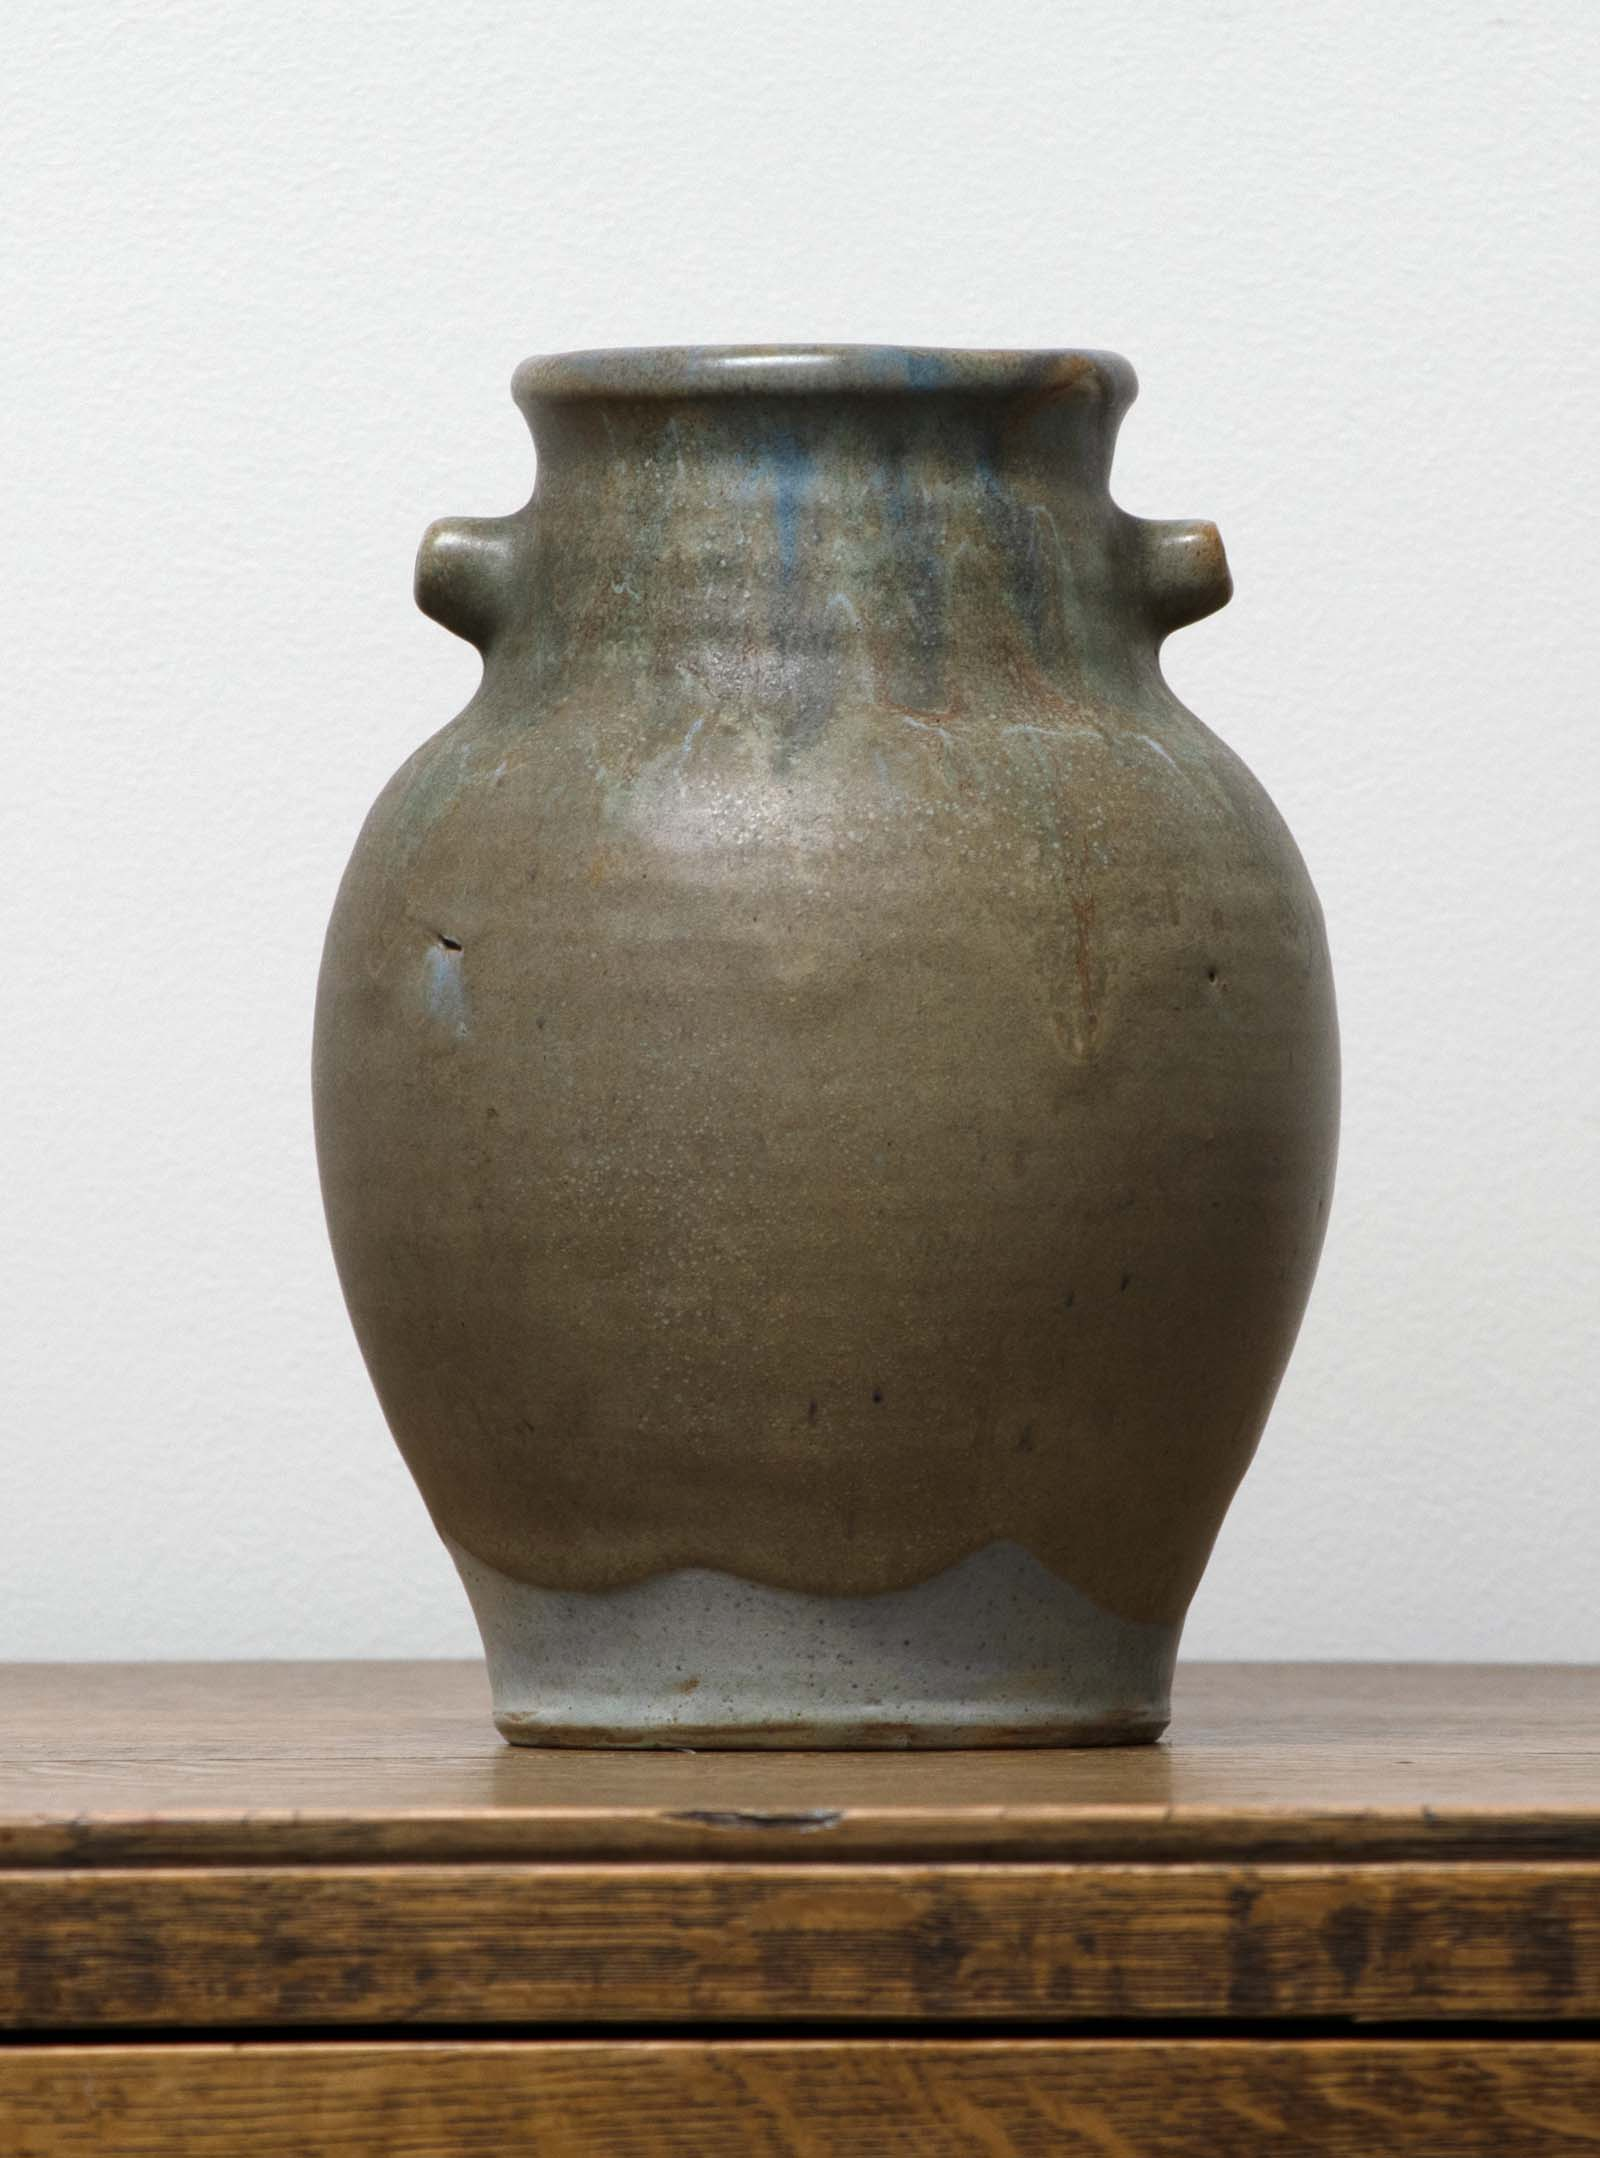 green stoneware vase with small handles by its mouthlid